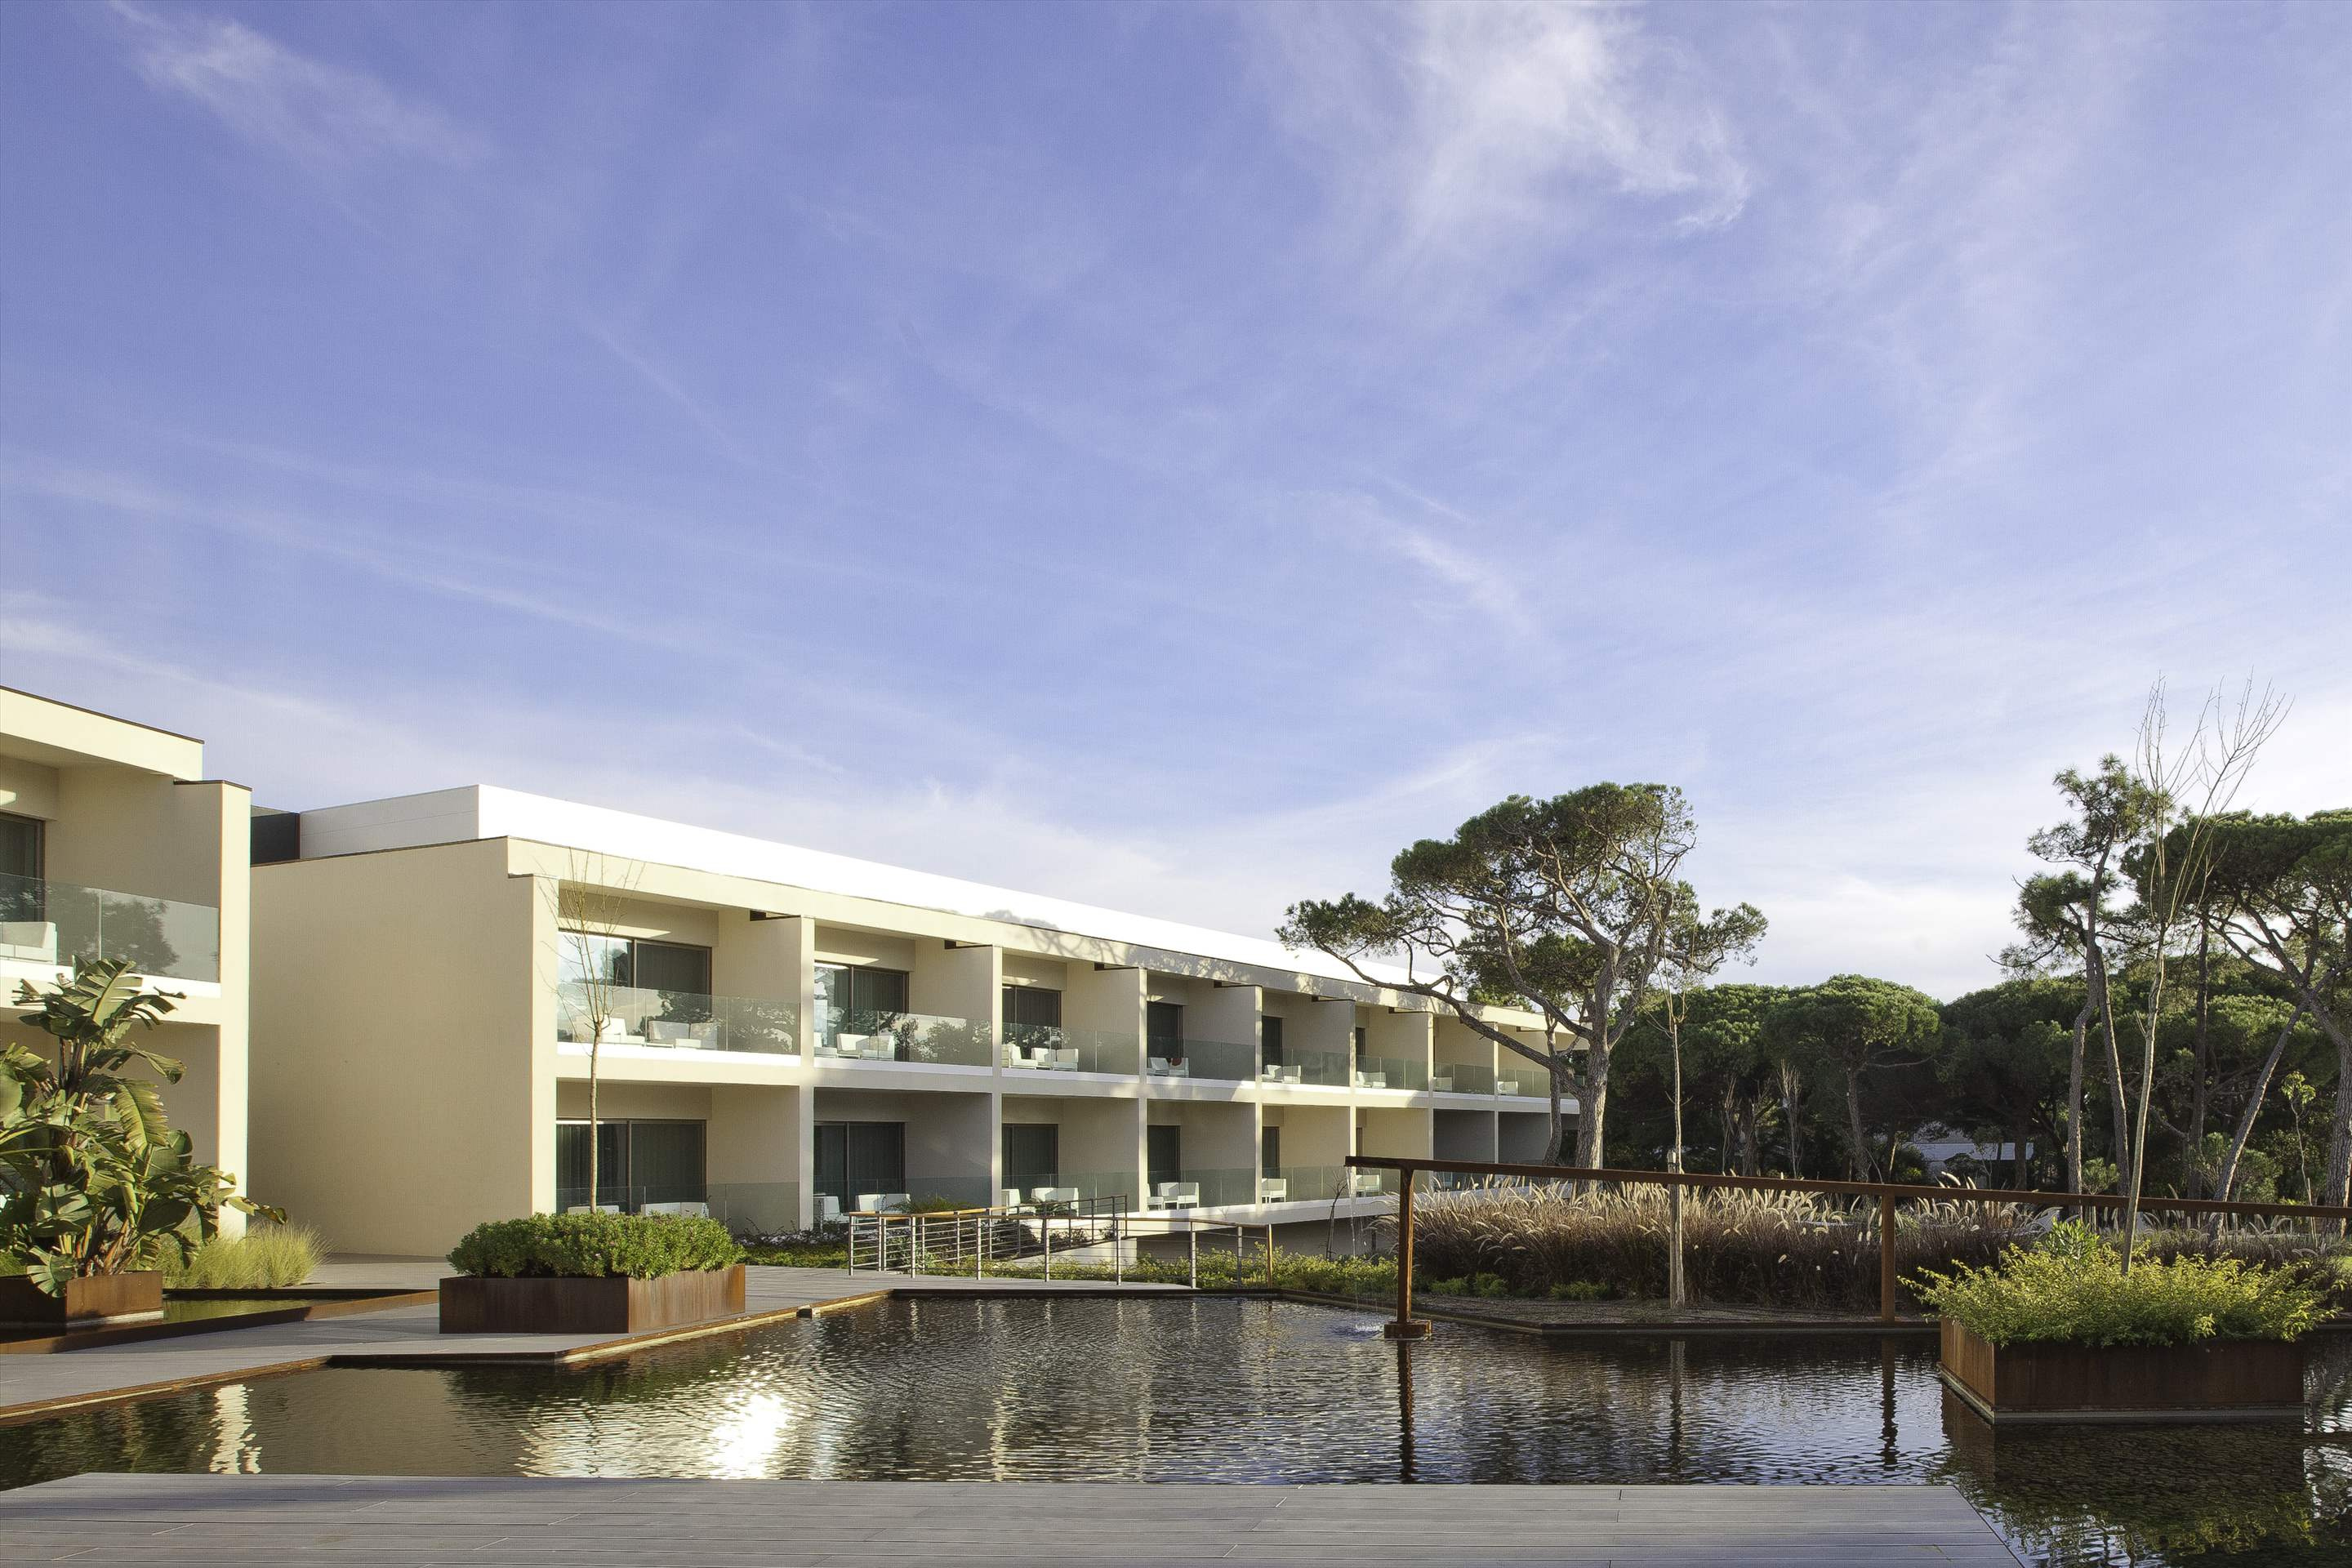 Martinhal Cascais Hotel, Deluxe Superior Room with bunk bed, BB Basis, 1 bedroom hotel in Lisbon Coast, Lisbon Photo #2